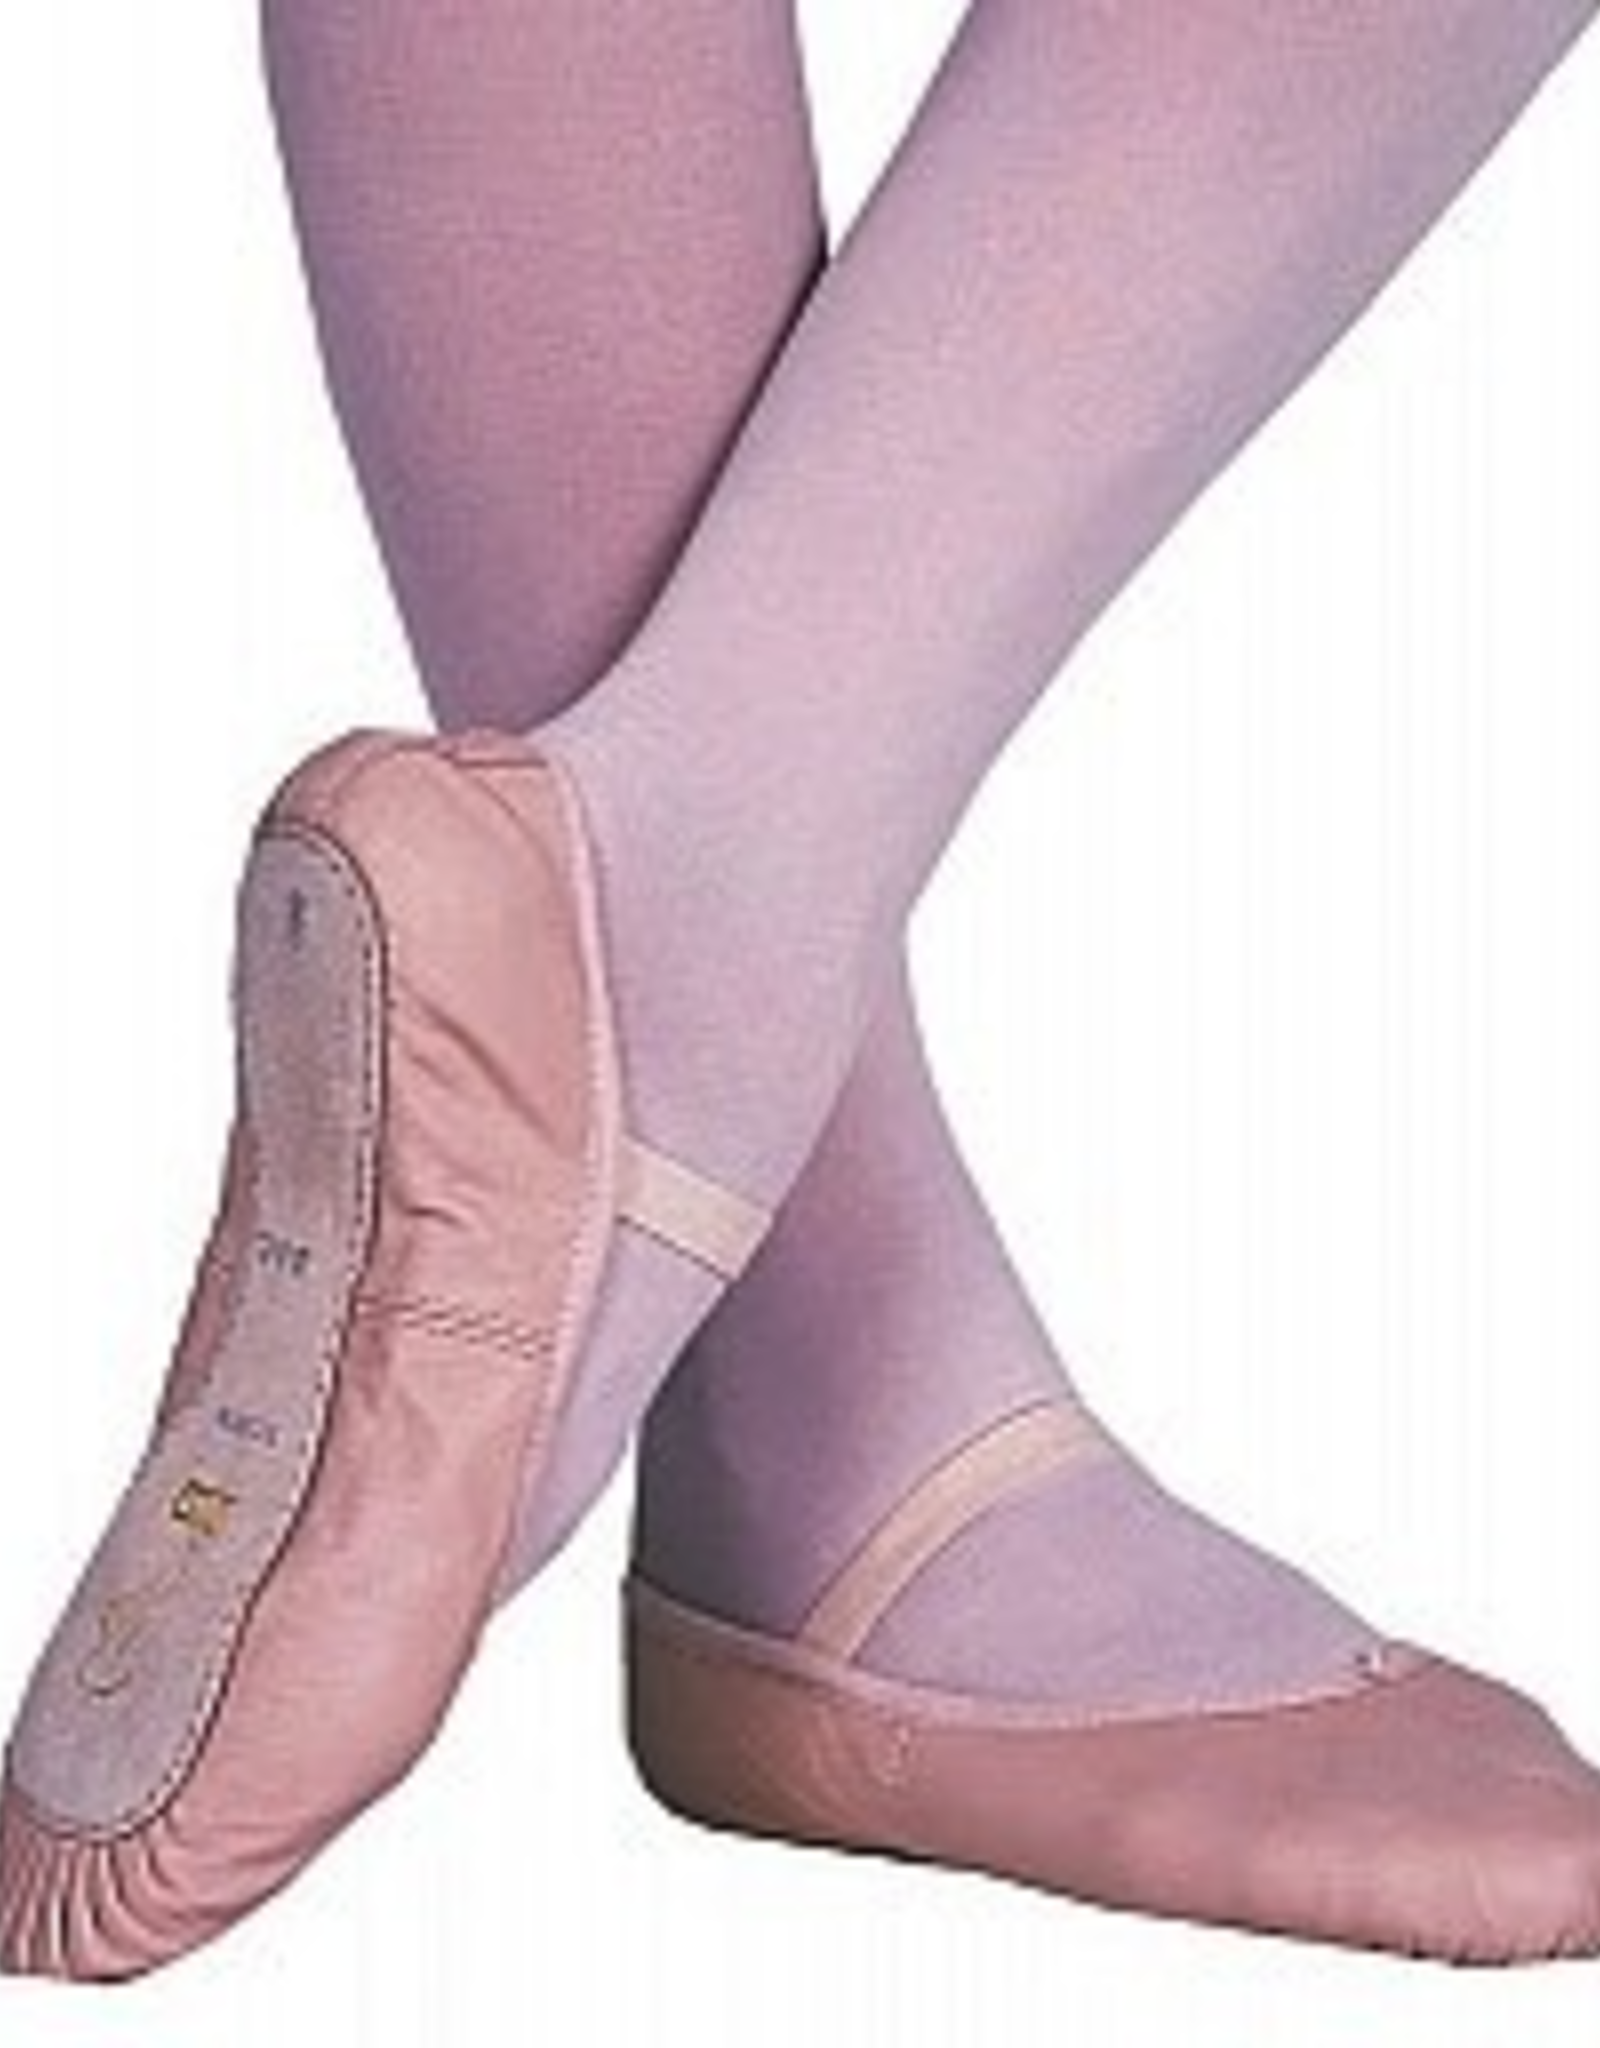 Bloch S0205L Pink Full Sole Leather Ballet Slipper Adult